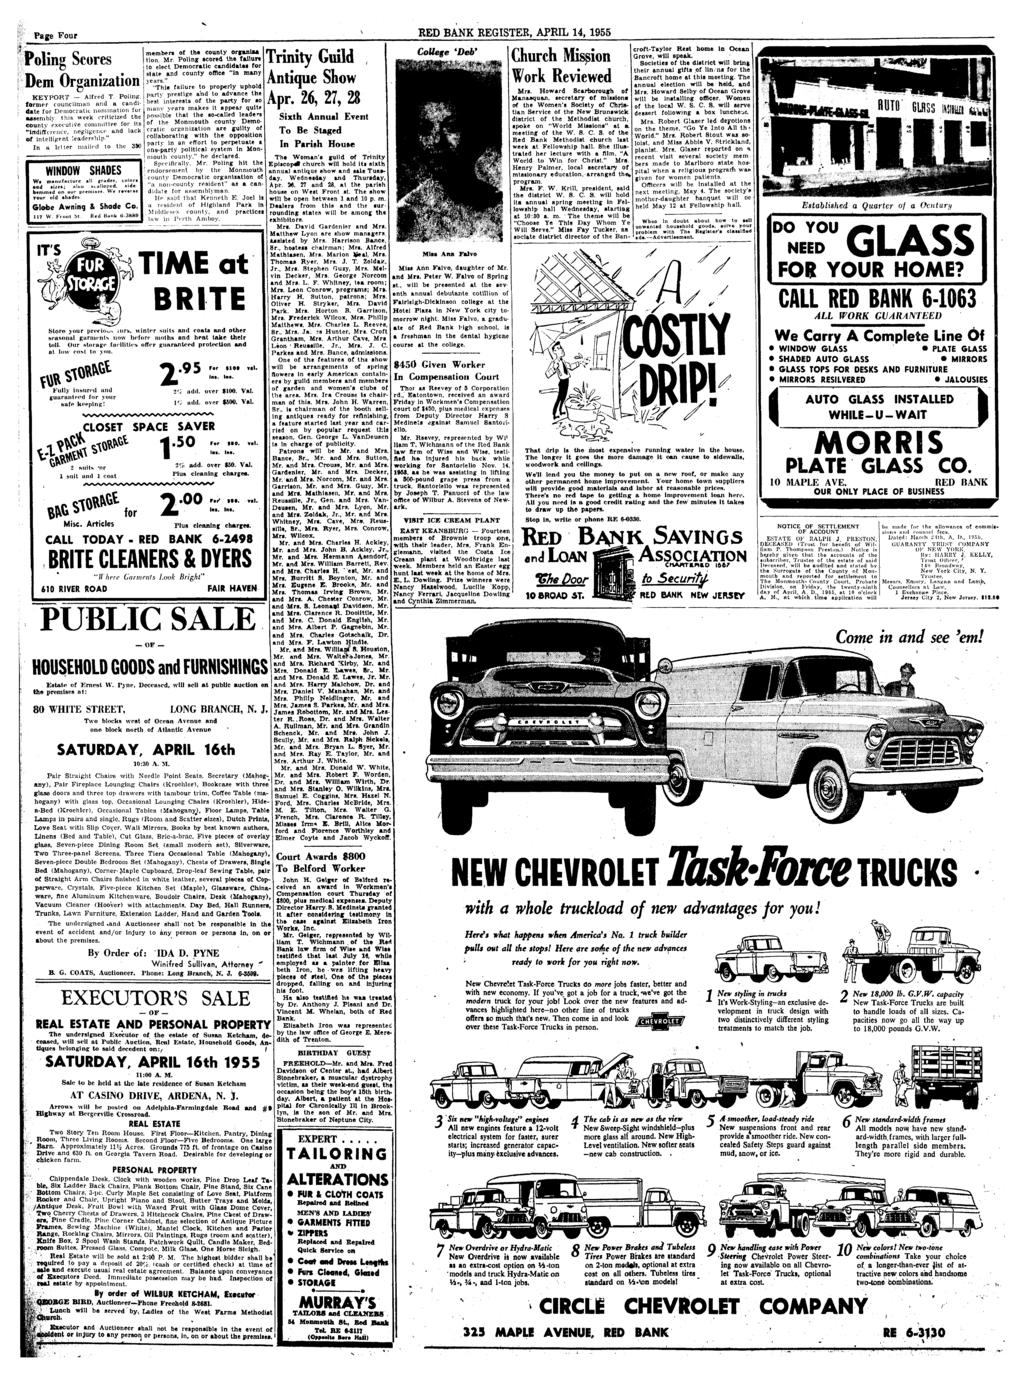 Red Bank Register For All Depa Pdf Prestige Electric Electrician Electrical Contractor Orlando Fl Page Four April 14 1955 Poling Scores Dem Organization Keyport Alfred